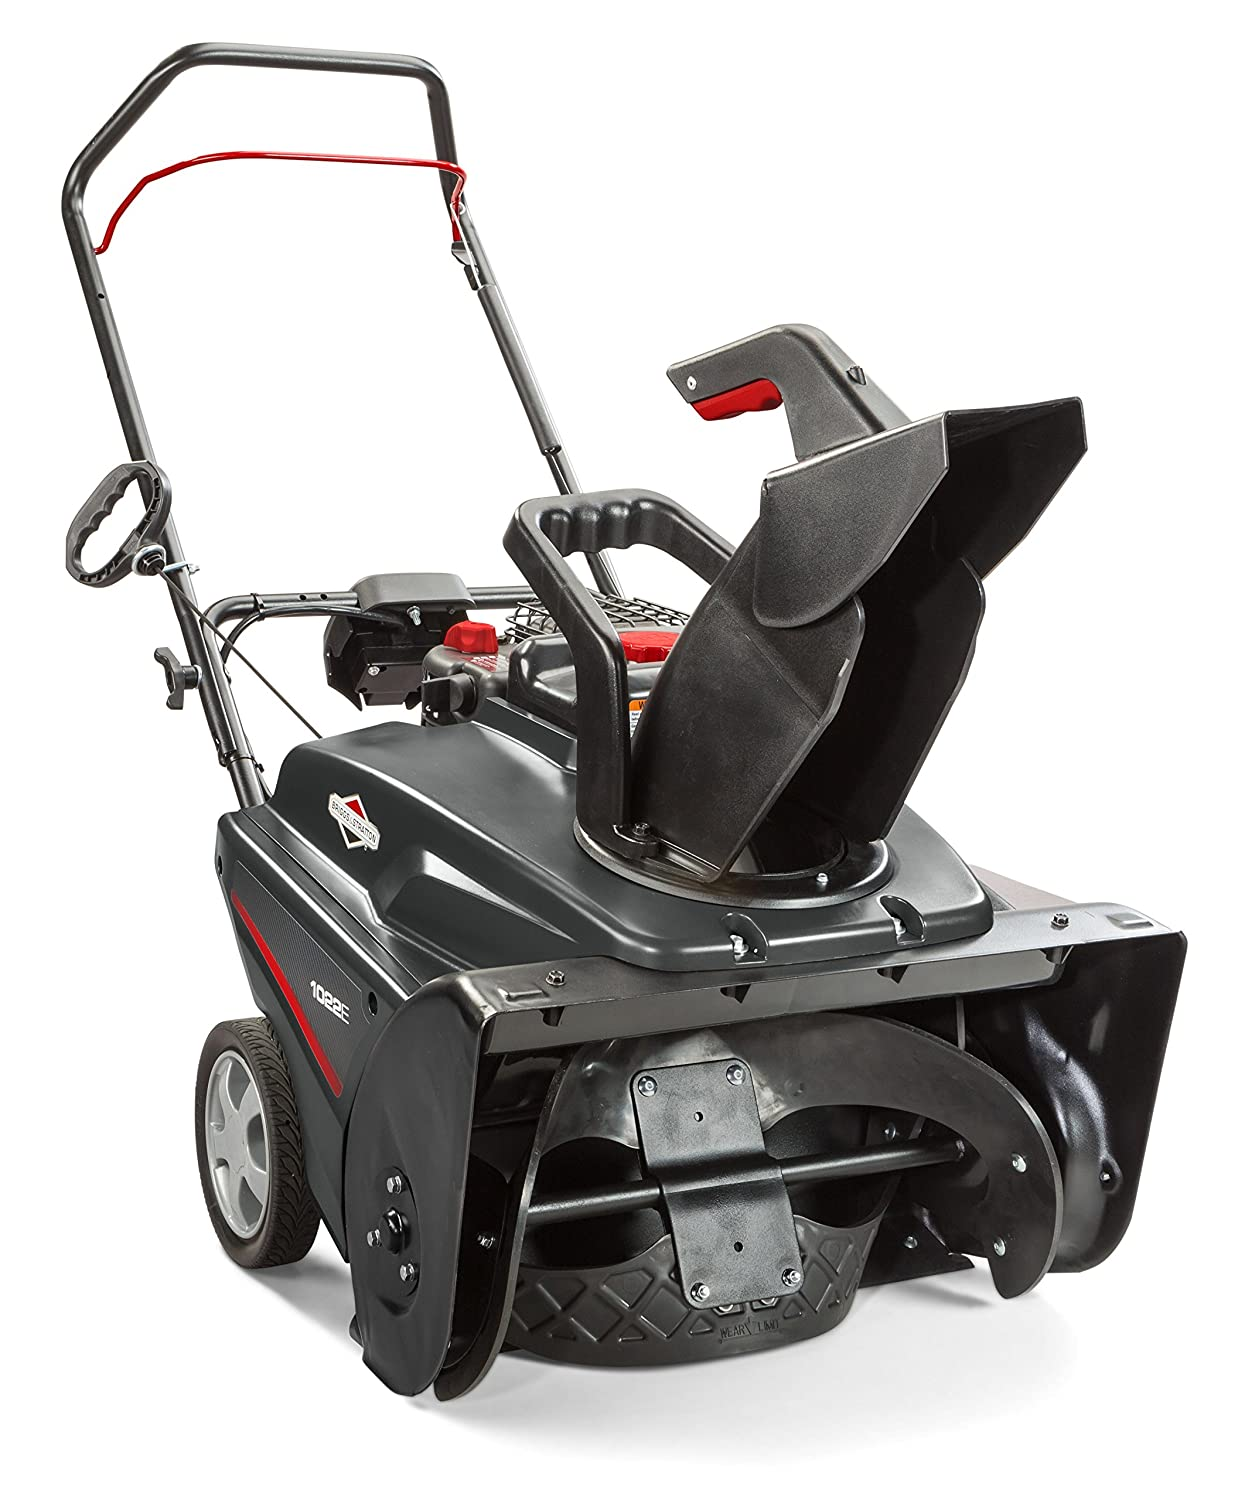 briggs and stratton 208cc snow blower review